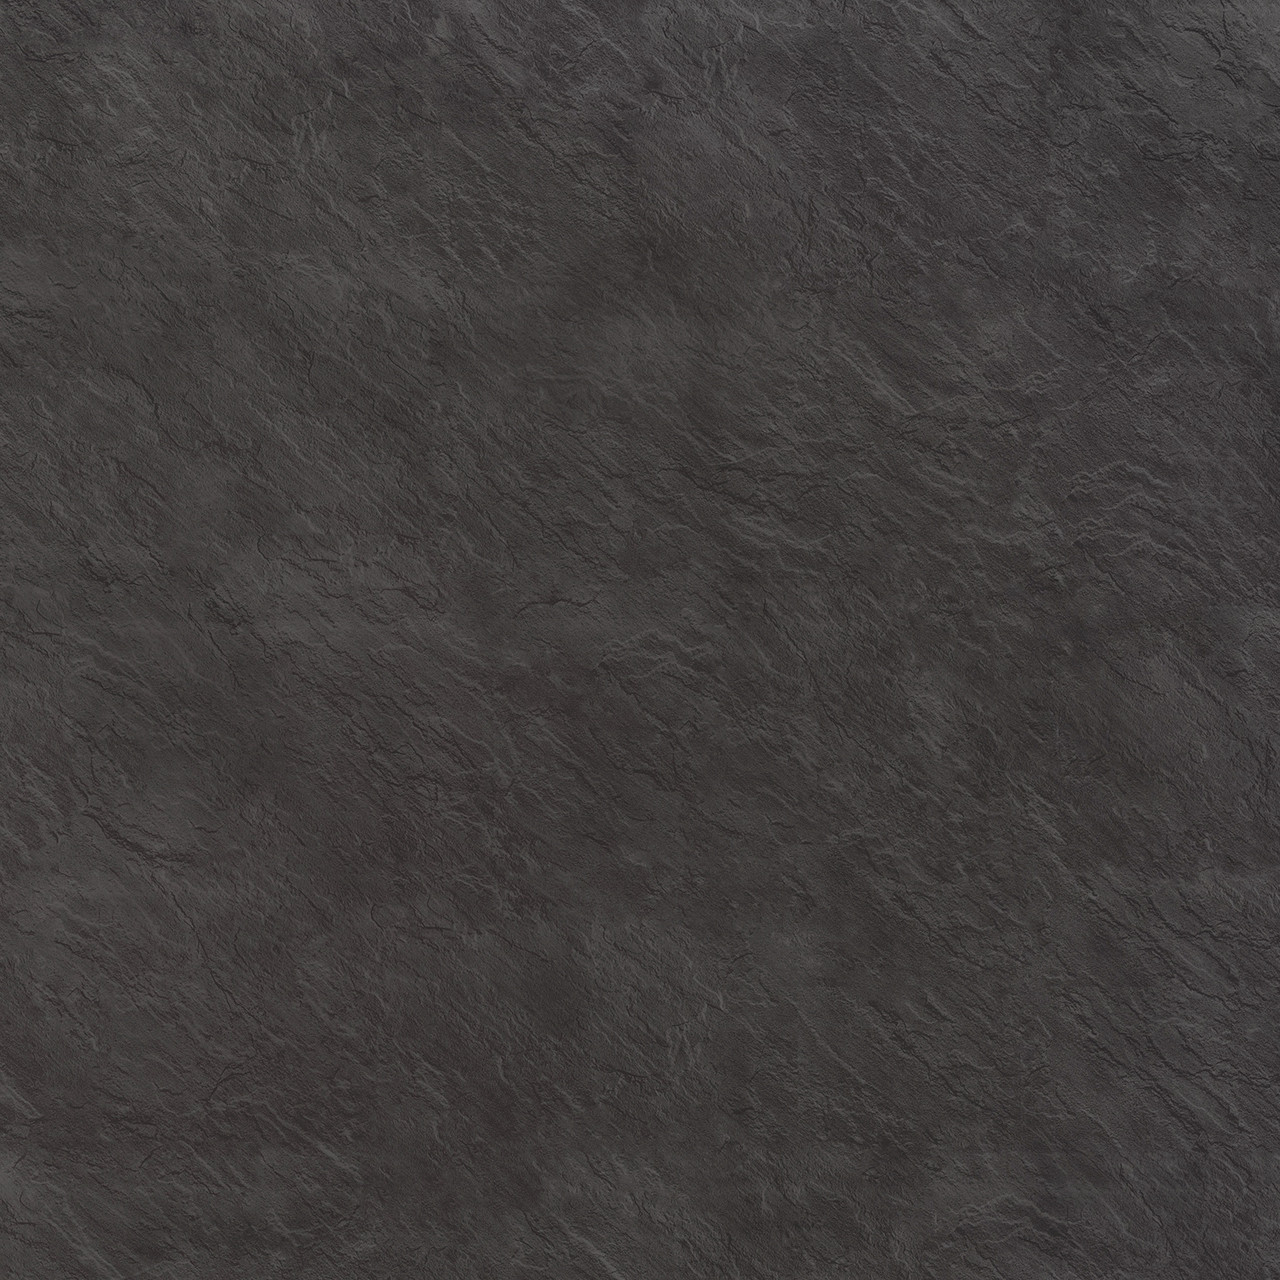 Multipanel Classic Riven Slate 2400mm x 1200mm Unlipped Bathroom Wall Panel